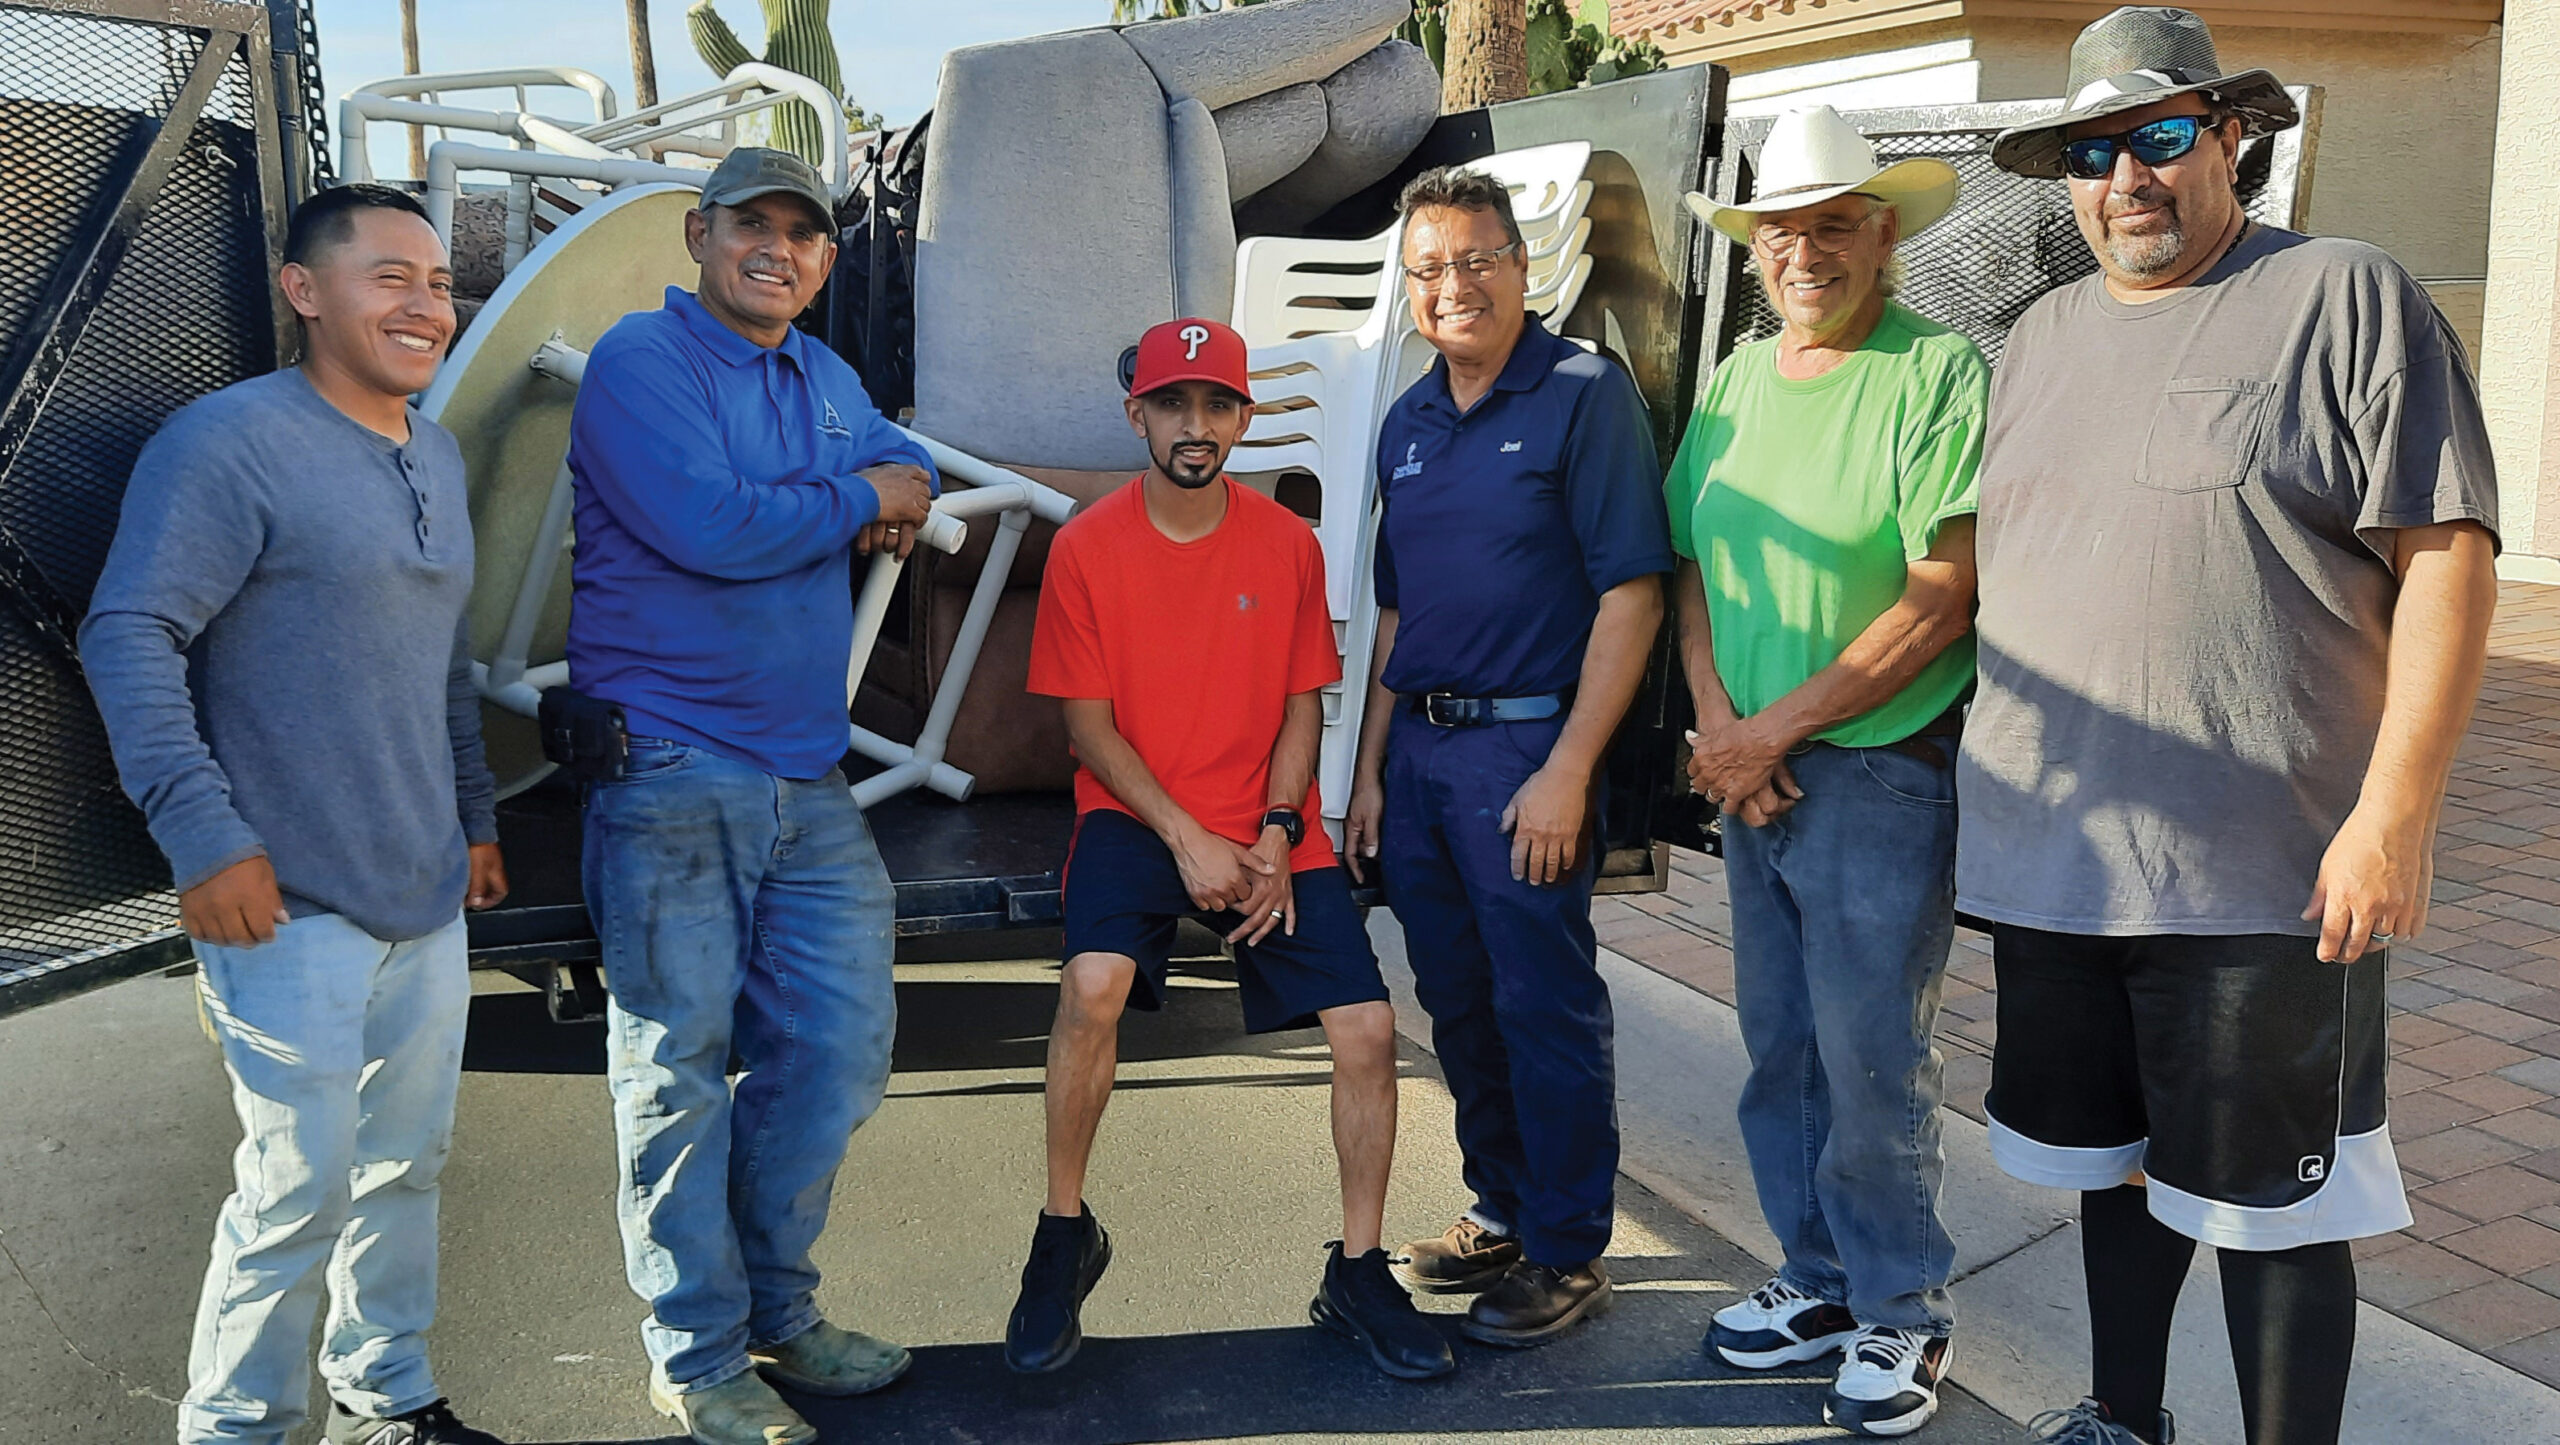 Volunteers from the Latin American Church of the Nazarene who came by to collect the furniture on the last day.